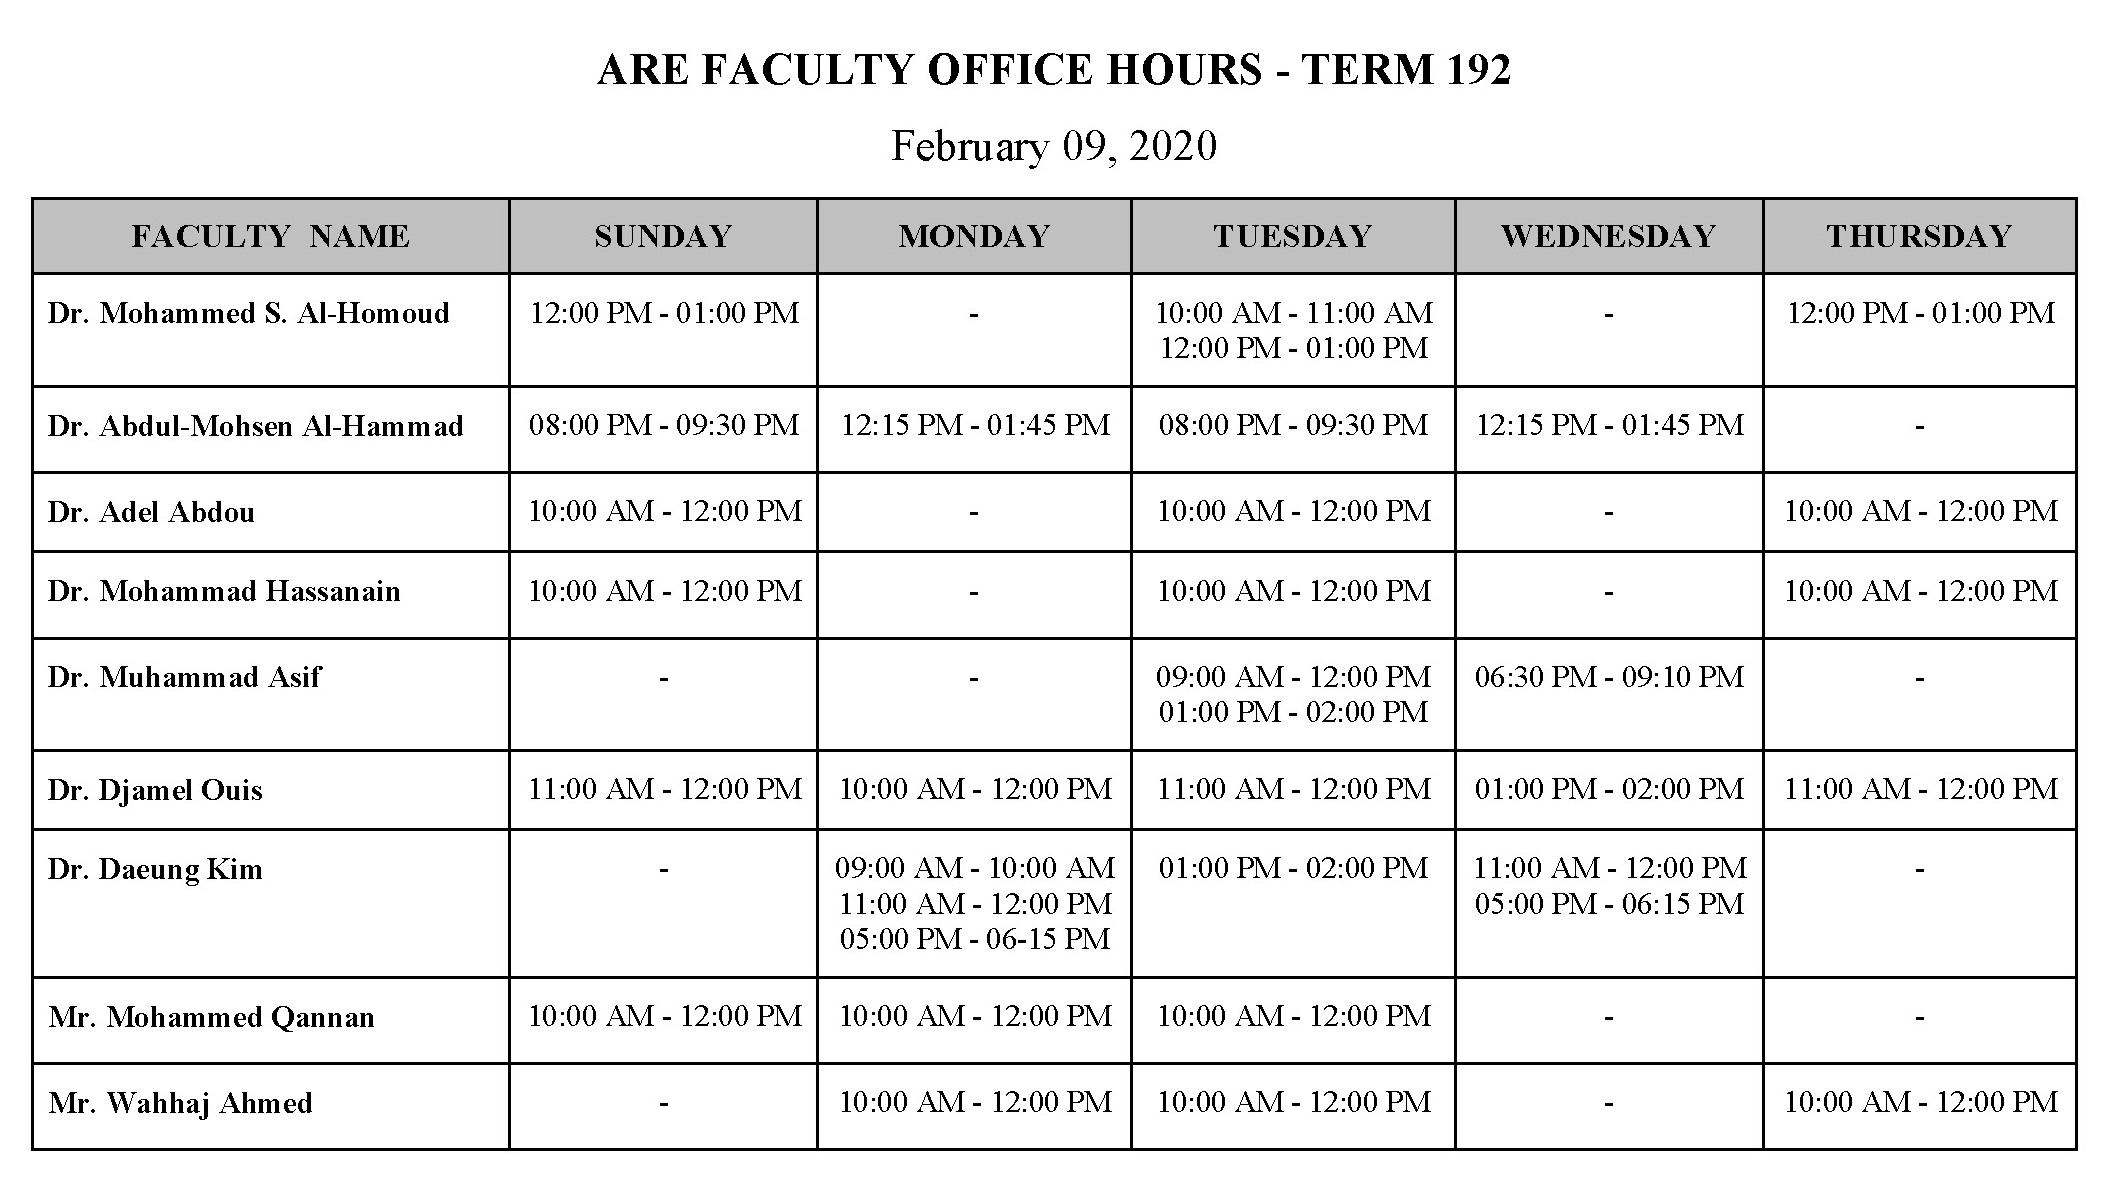 ARE FACULTY OFFICE HOURS.jpg